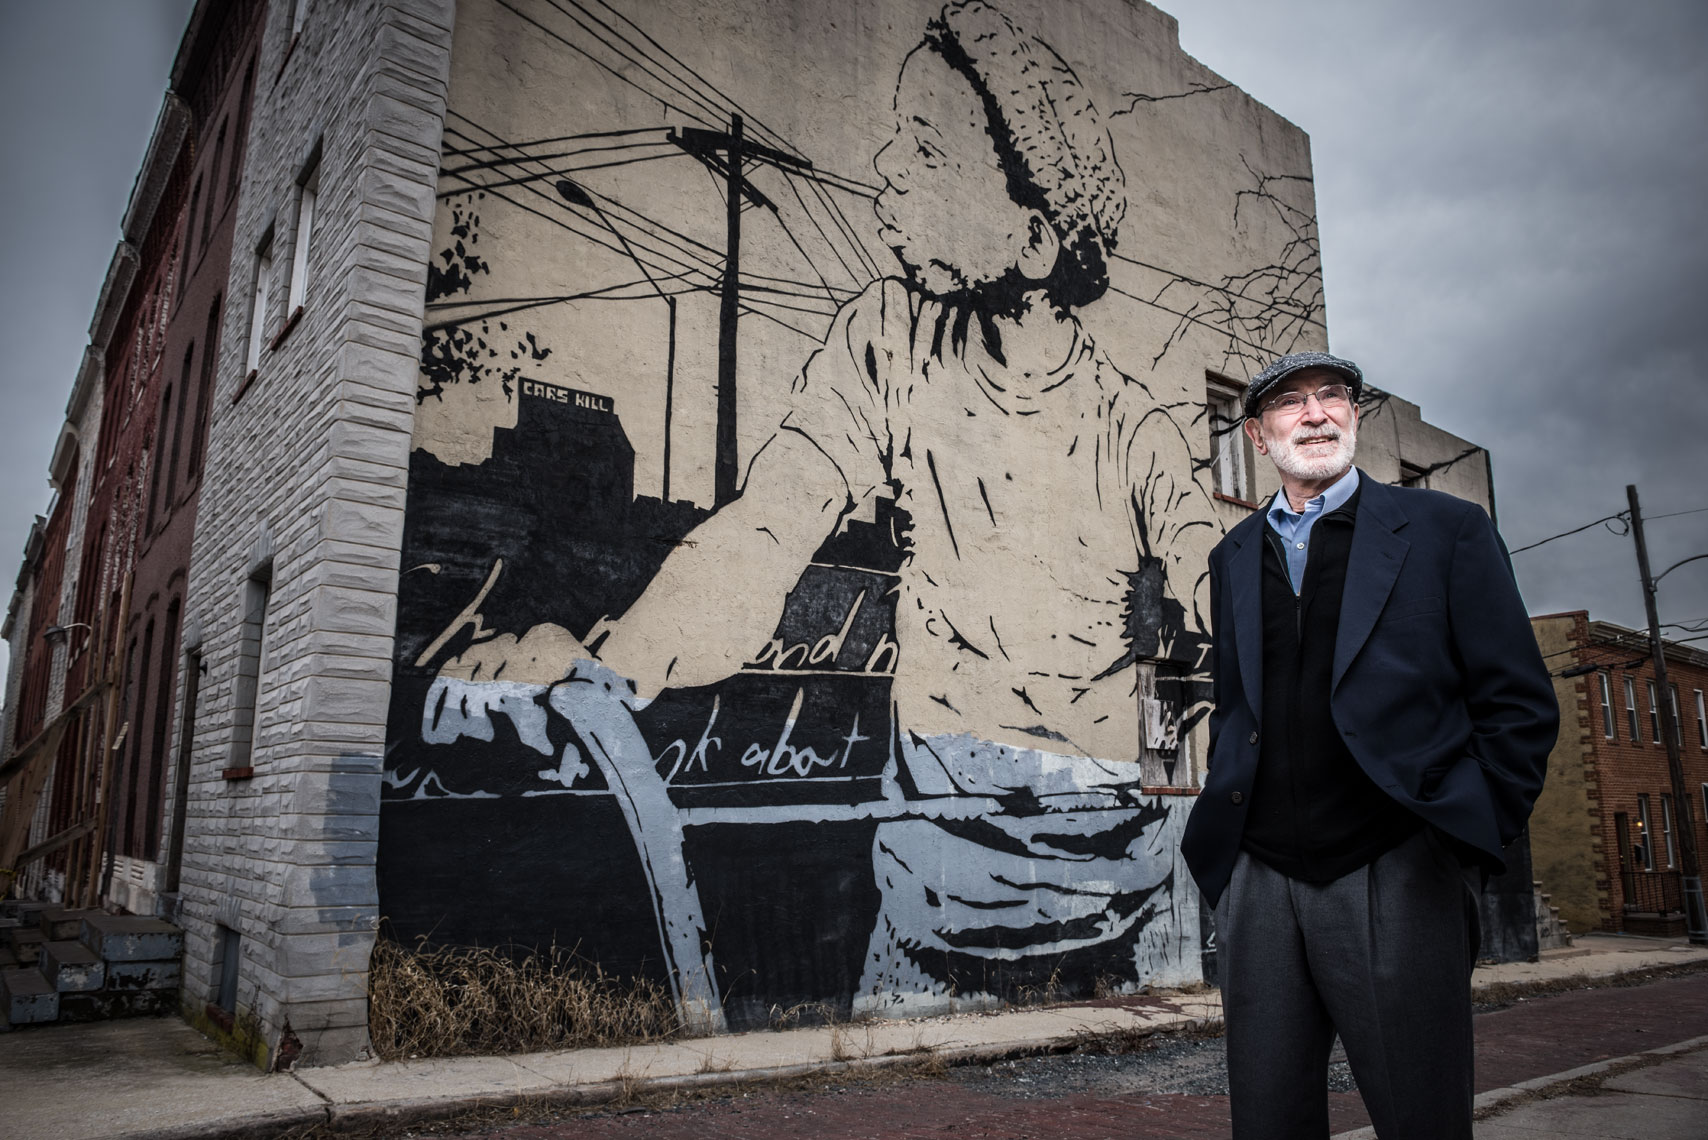 Johns Hopkins sociologist and author Dr. Karl Alexander standing in front of a mural on the streets of Baltimore.